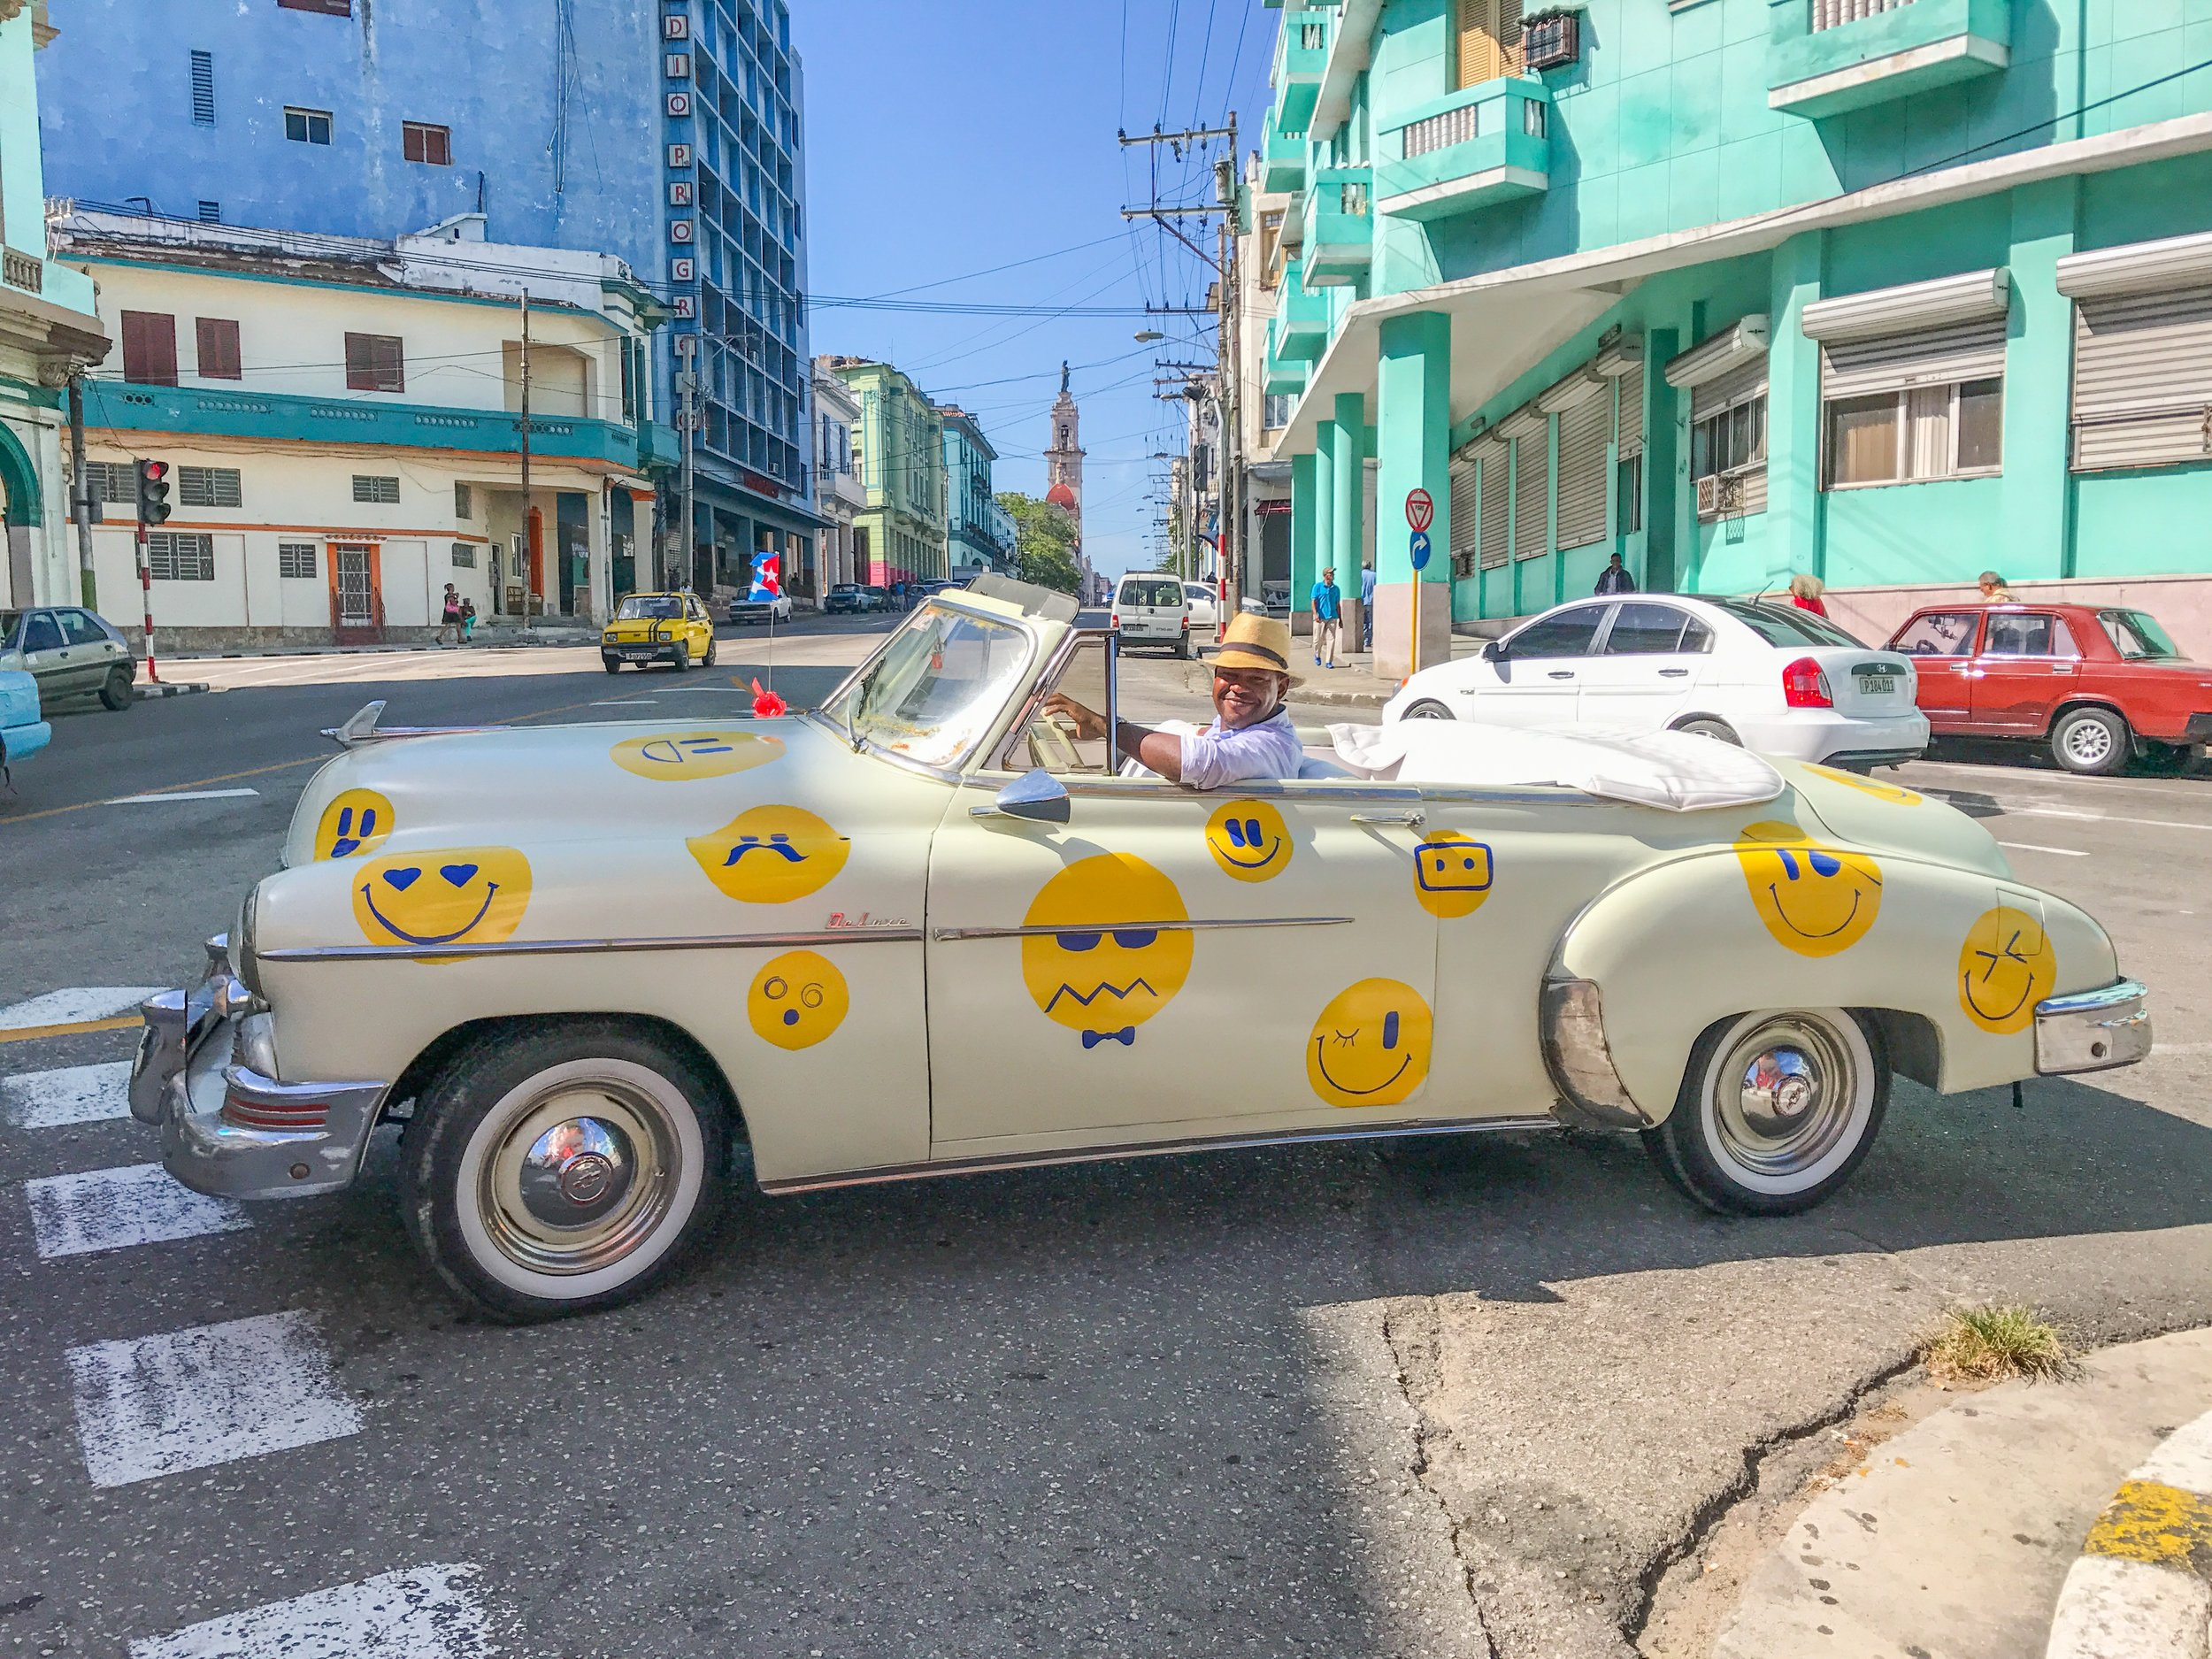 The happiest car in Cuba